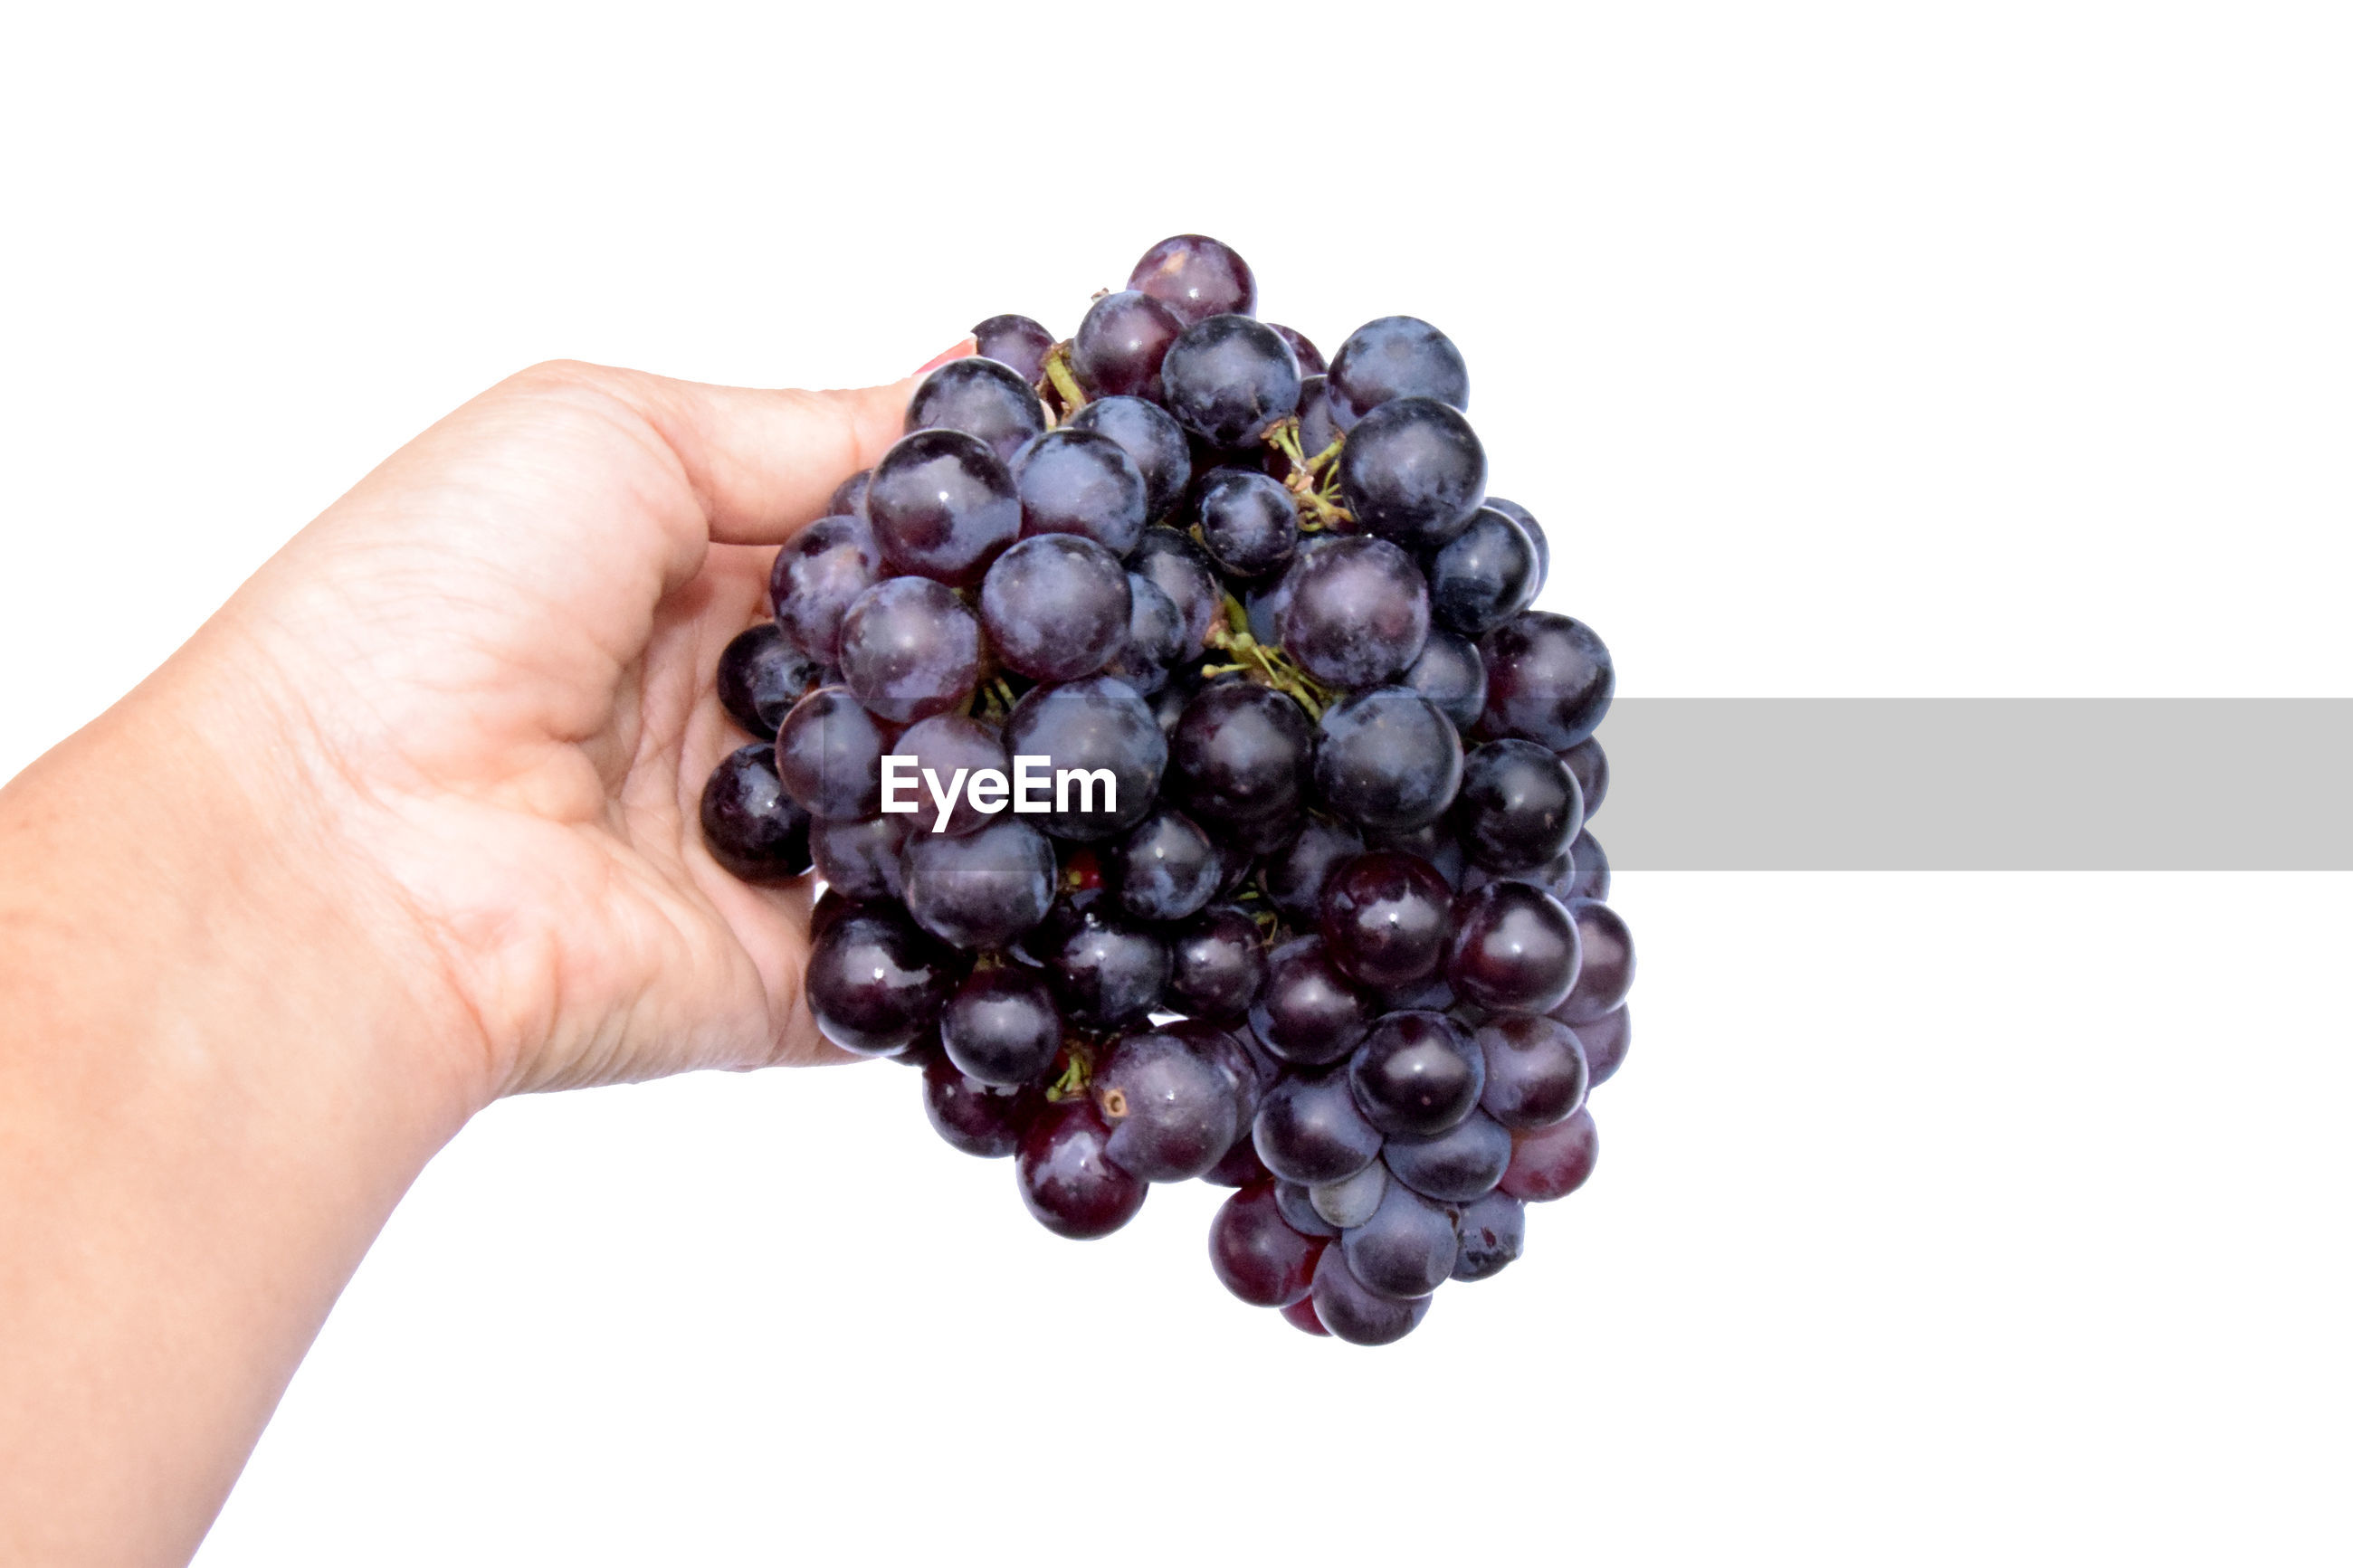 CROPPED IMAGE OF HAND HOLDING GRAPES AGAINST WHITE BACKGROUND